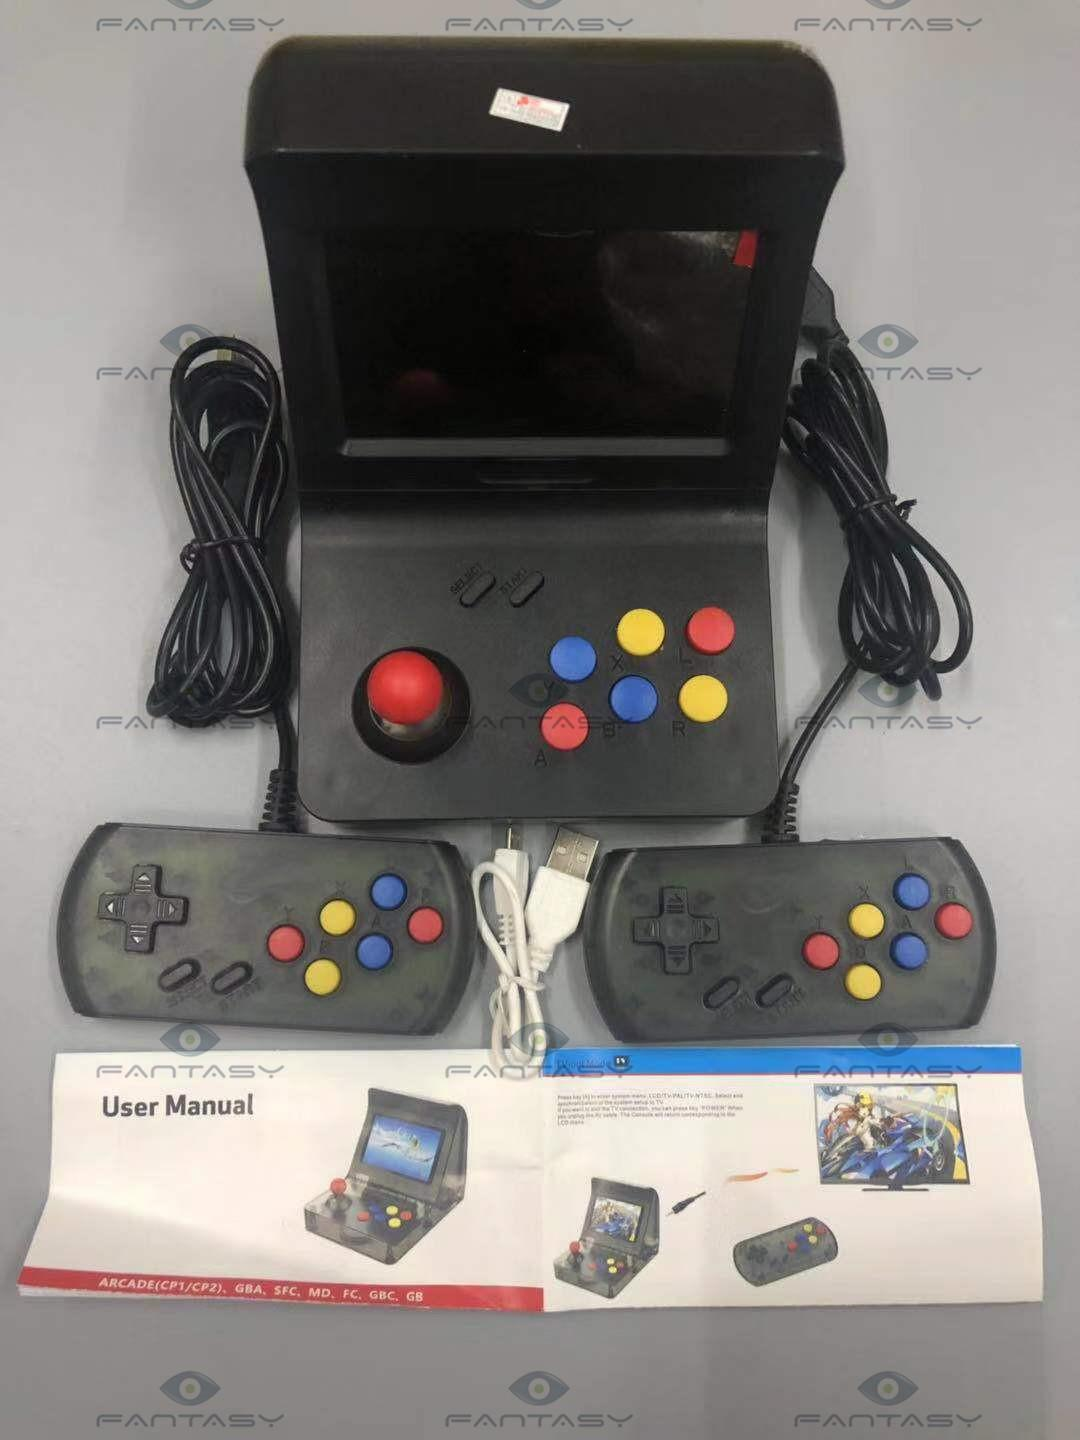 Other Video Game for sale - Other Video Games prices, brands & specs